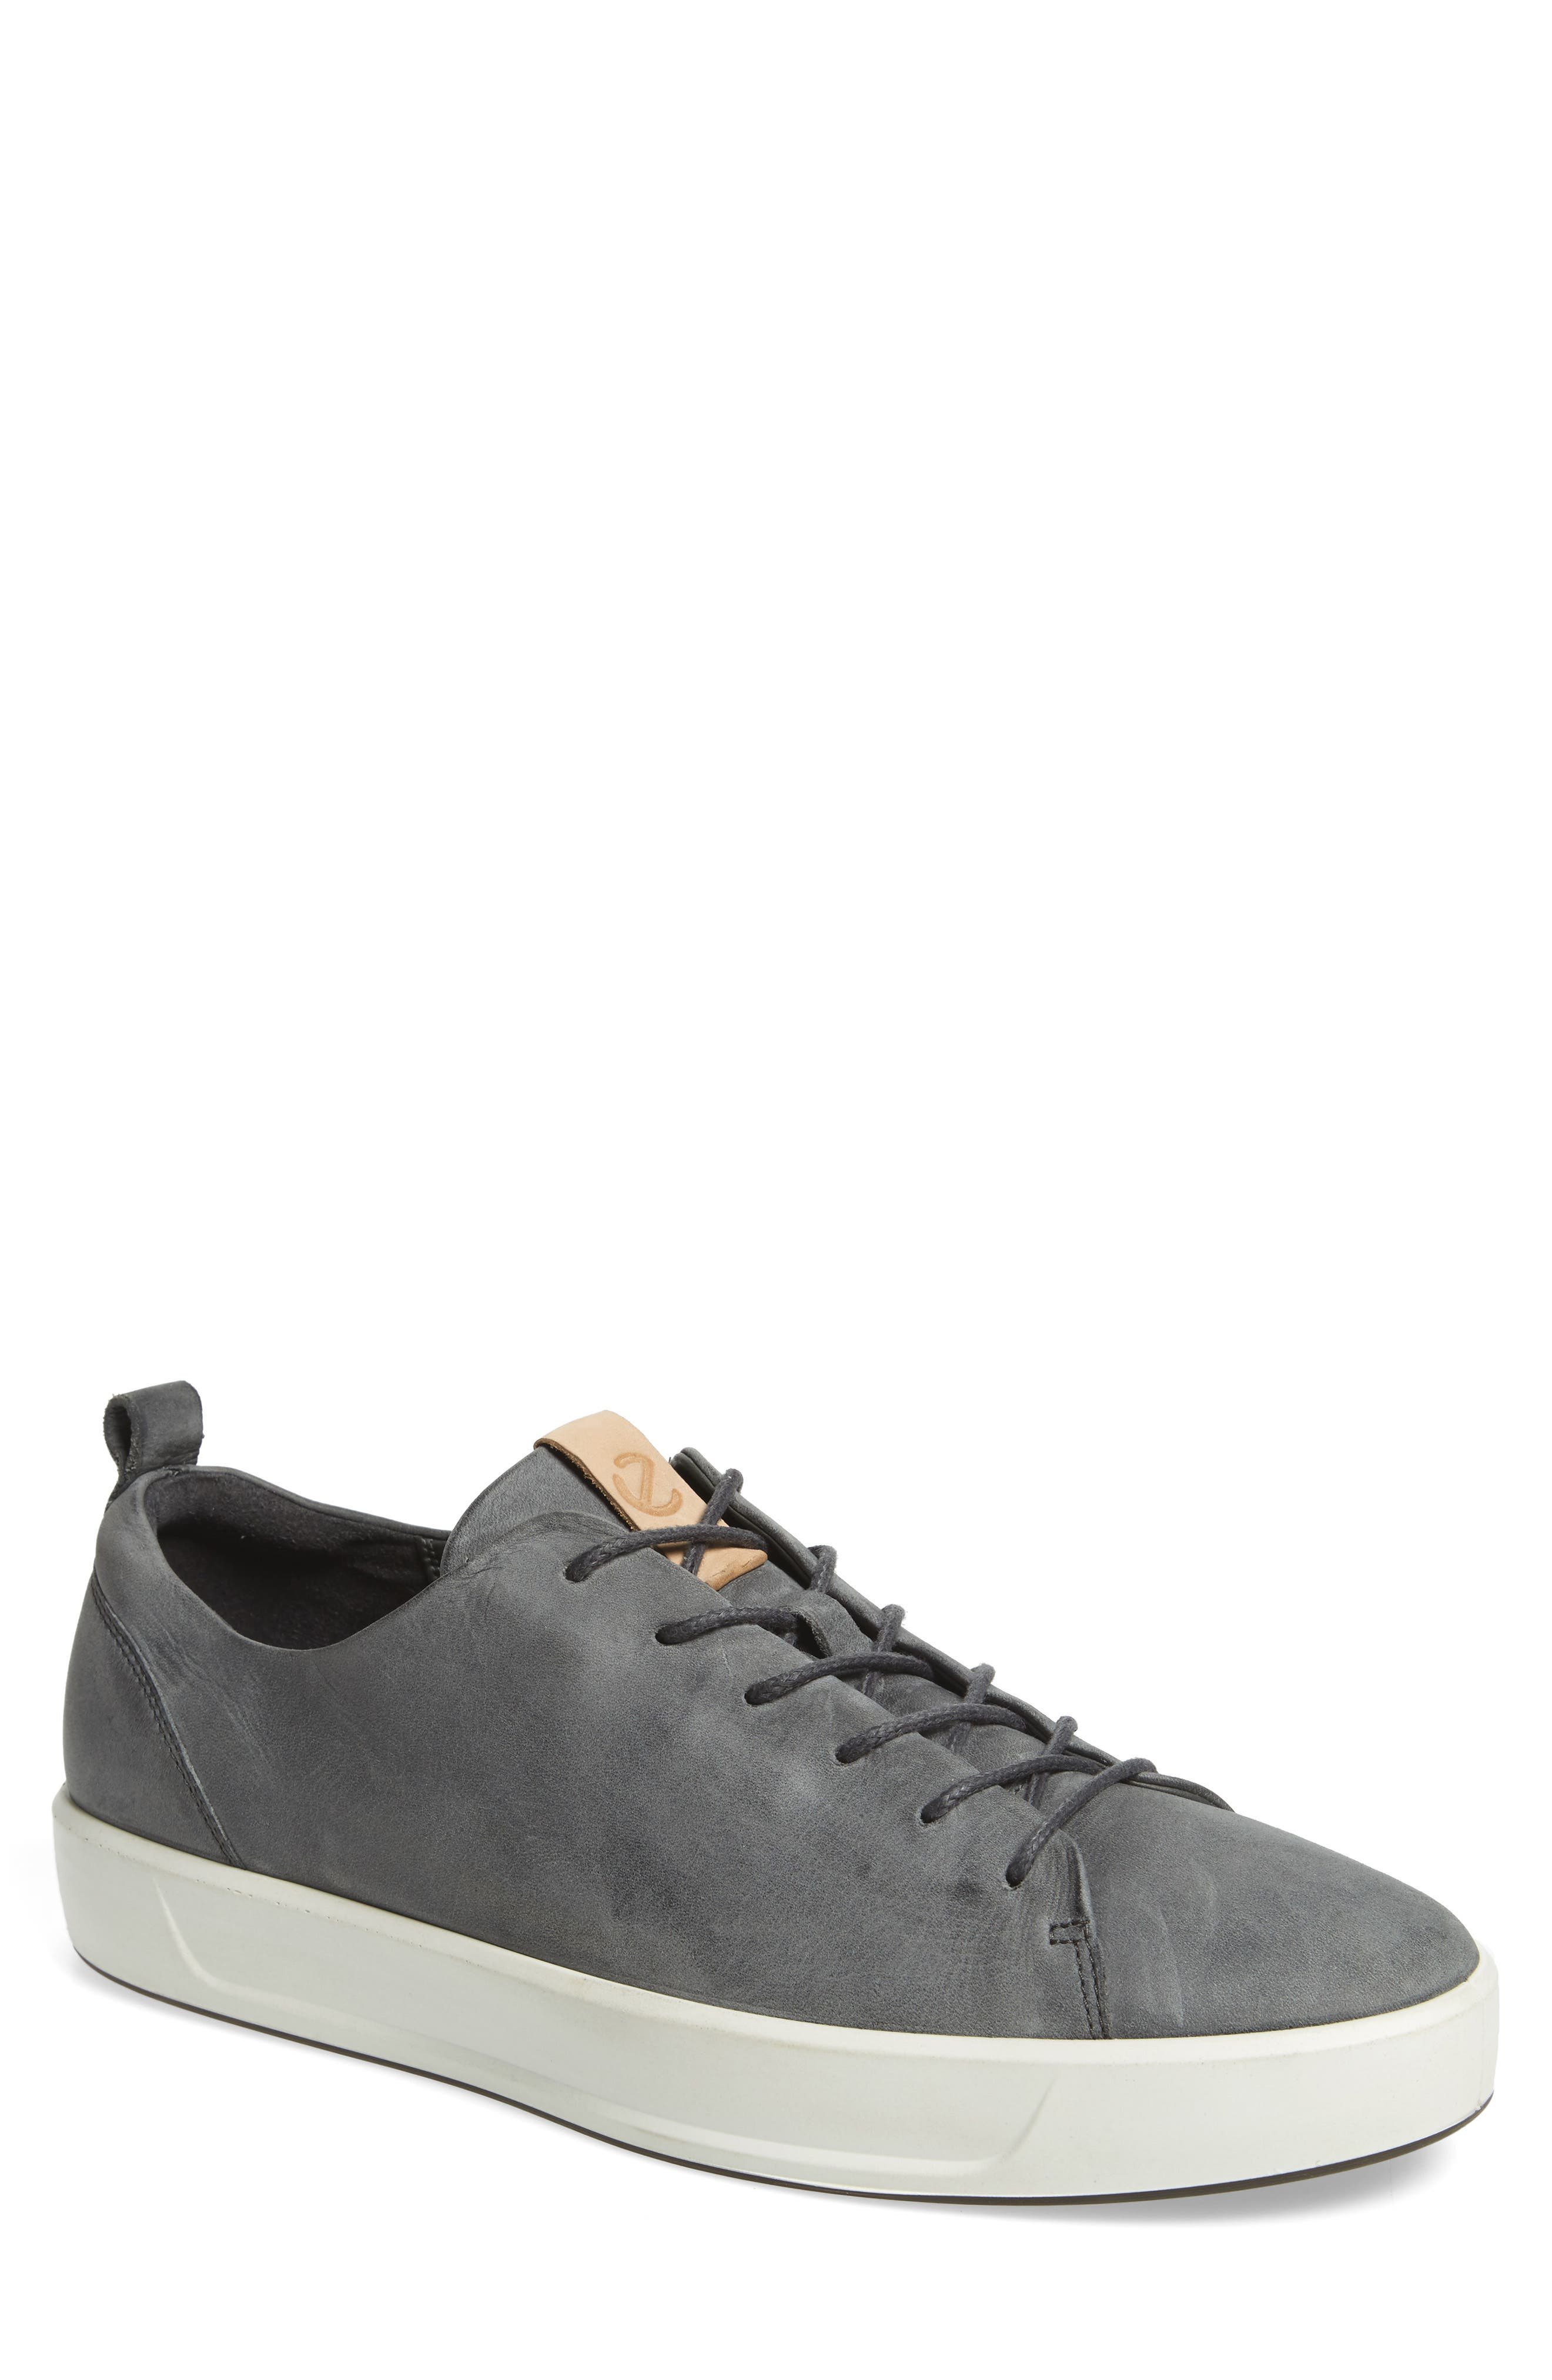 Soft 8 Sneaker,                             Main thumbnail 1, color,                             Dark Shadow Leather